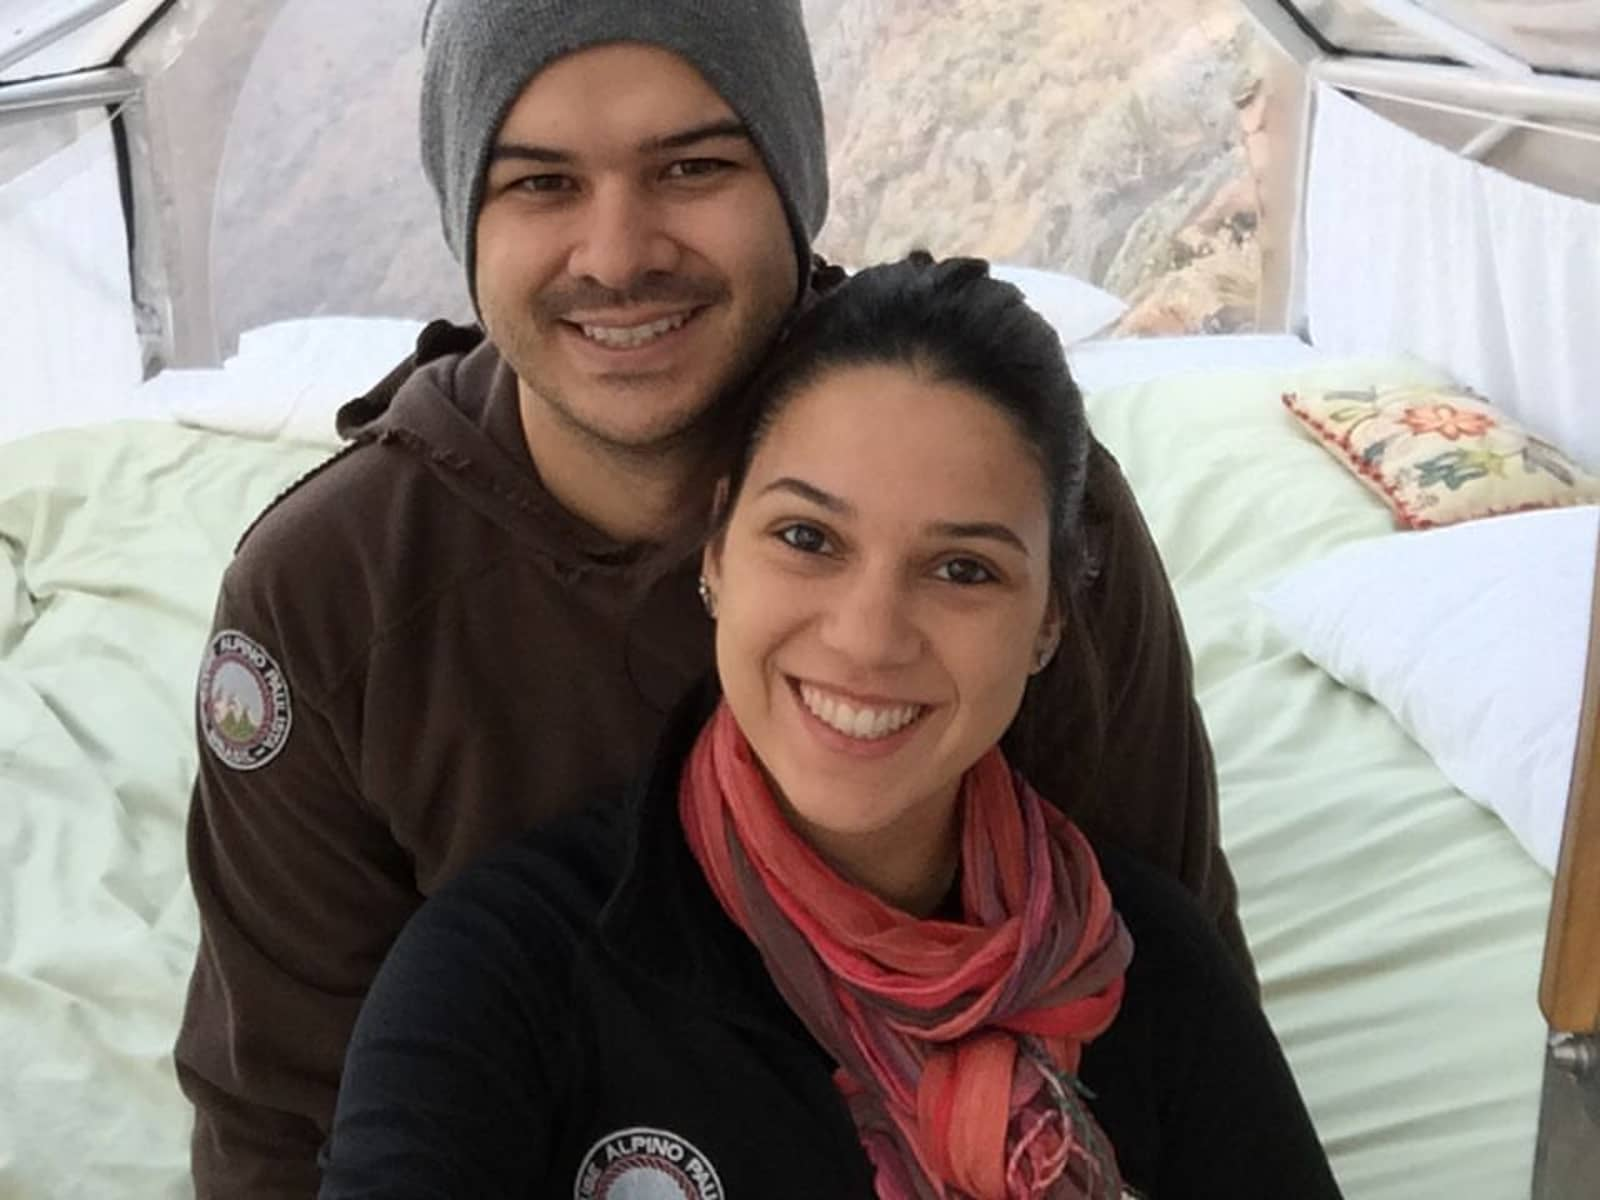 Claudia & Marcos from London, United Kingdom